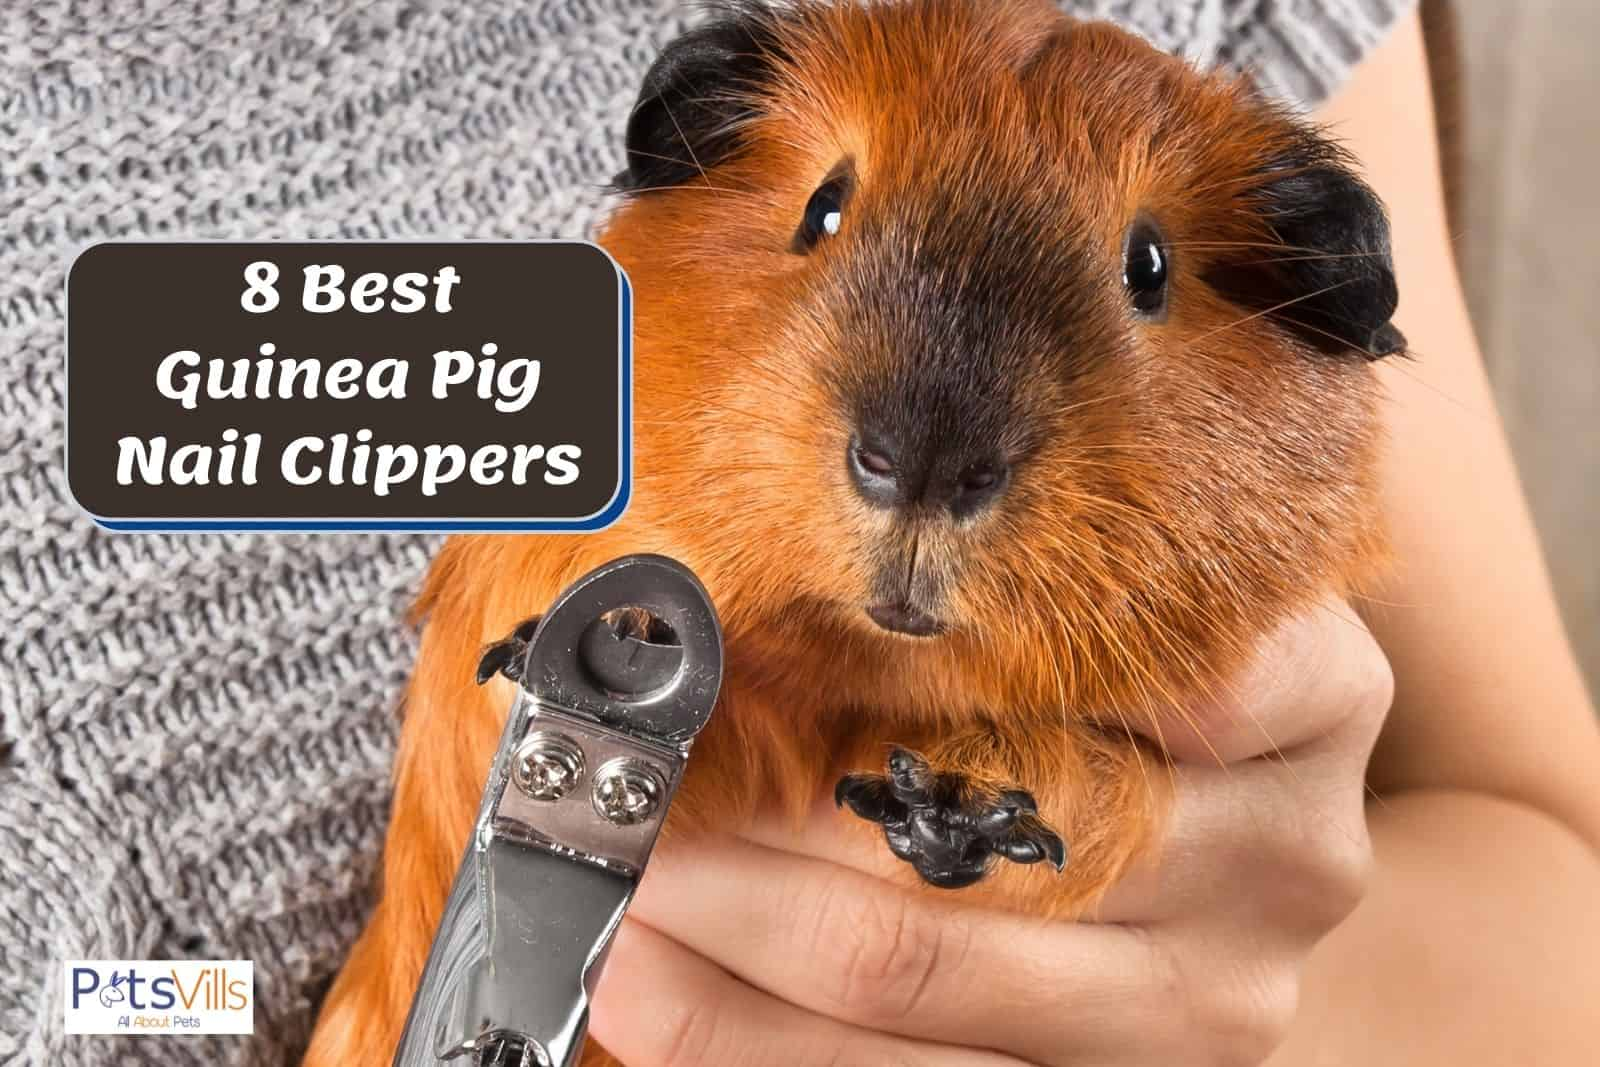 lady trimming his cavy's nails using the Best Guinea Pig Nail Clippers